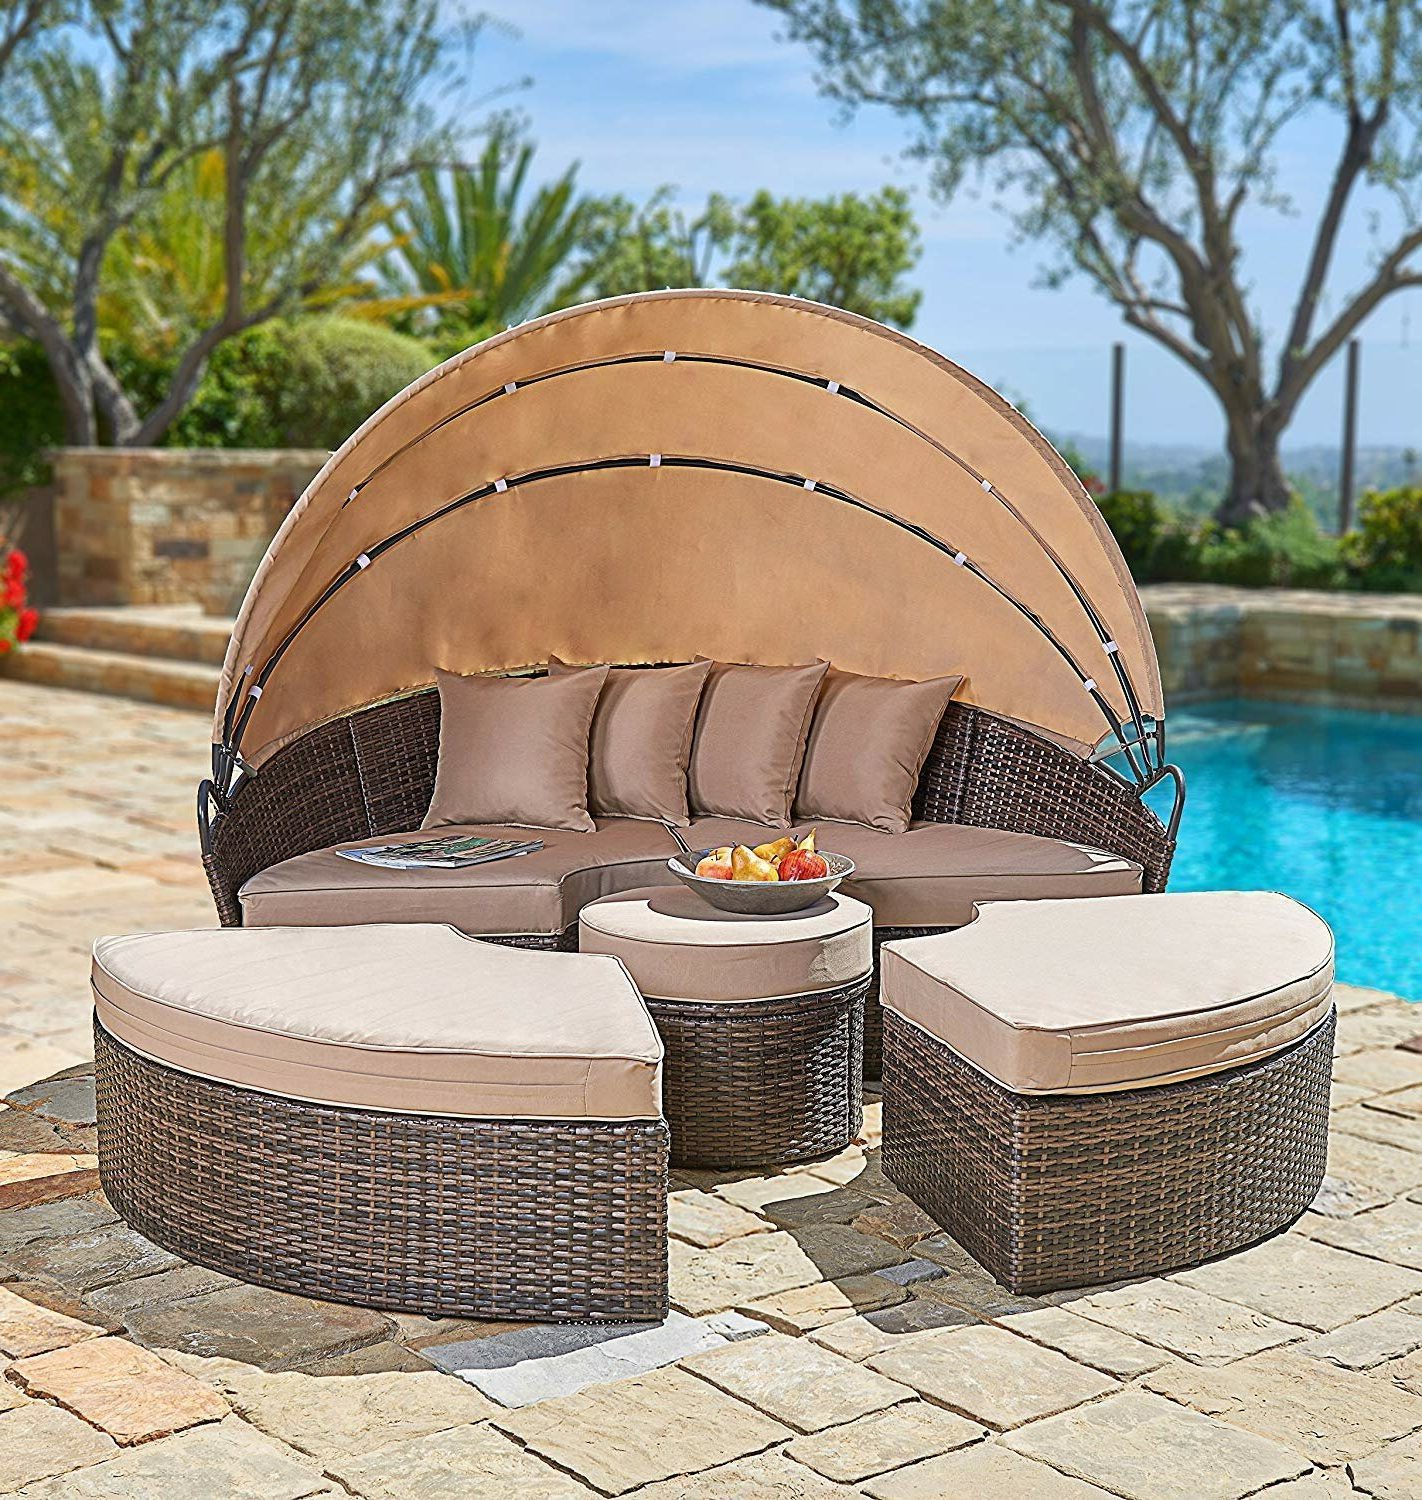 Fashionable Fansler Patio Daybeds With Cushions Pertaining To Behling Canopy Patio Daybed With Cushions (View 14 of 20)